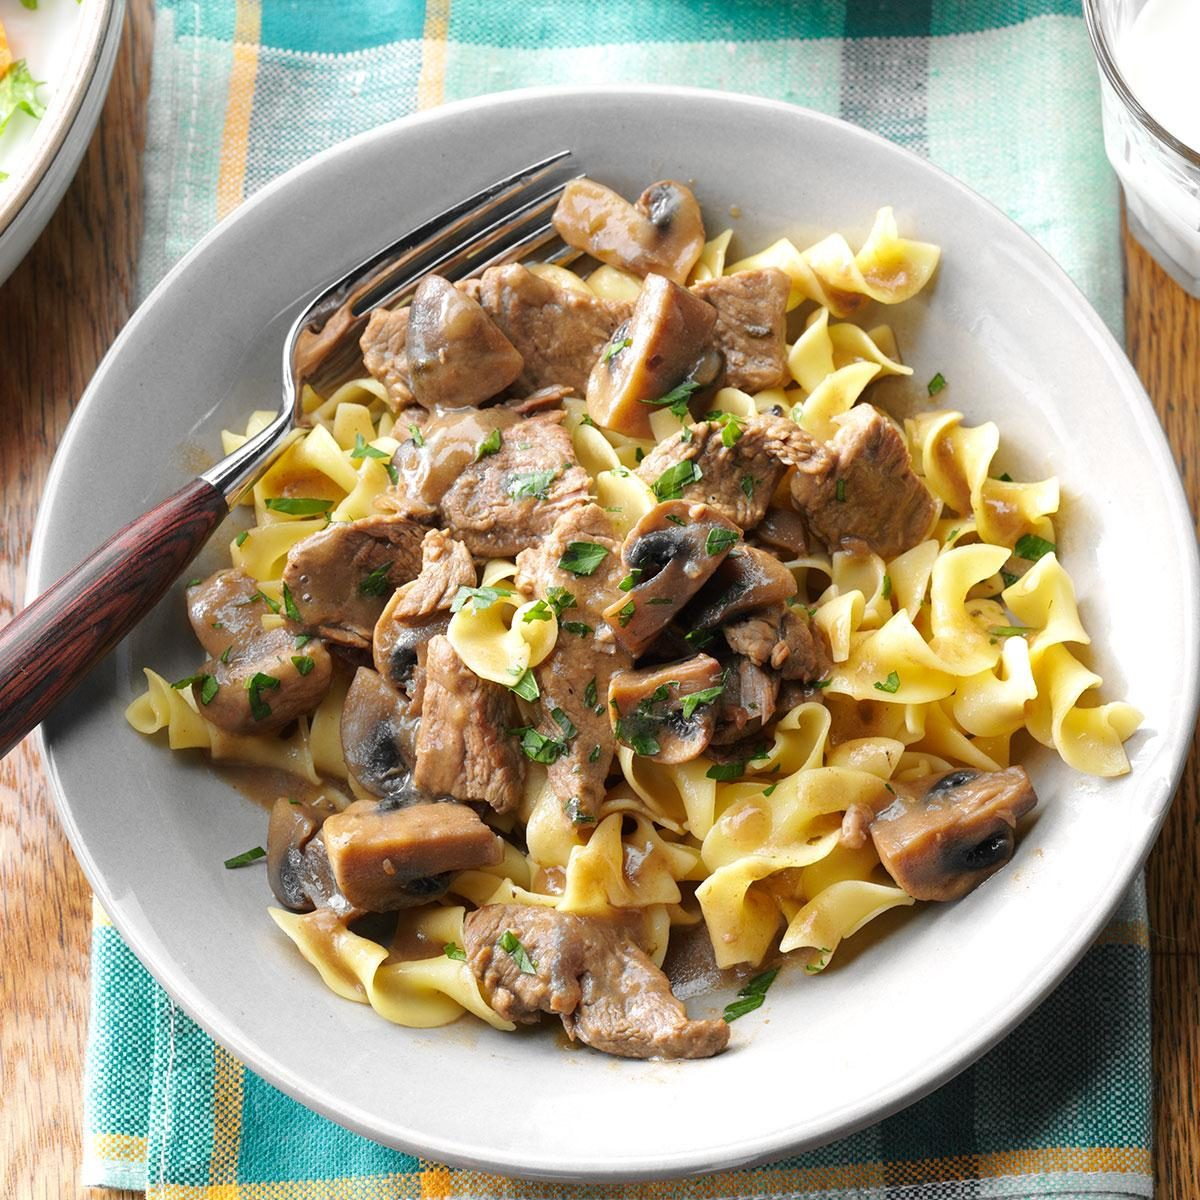 Day 4 Dinner: Beef Burgundy Over Noodles